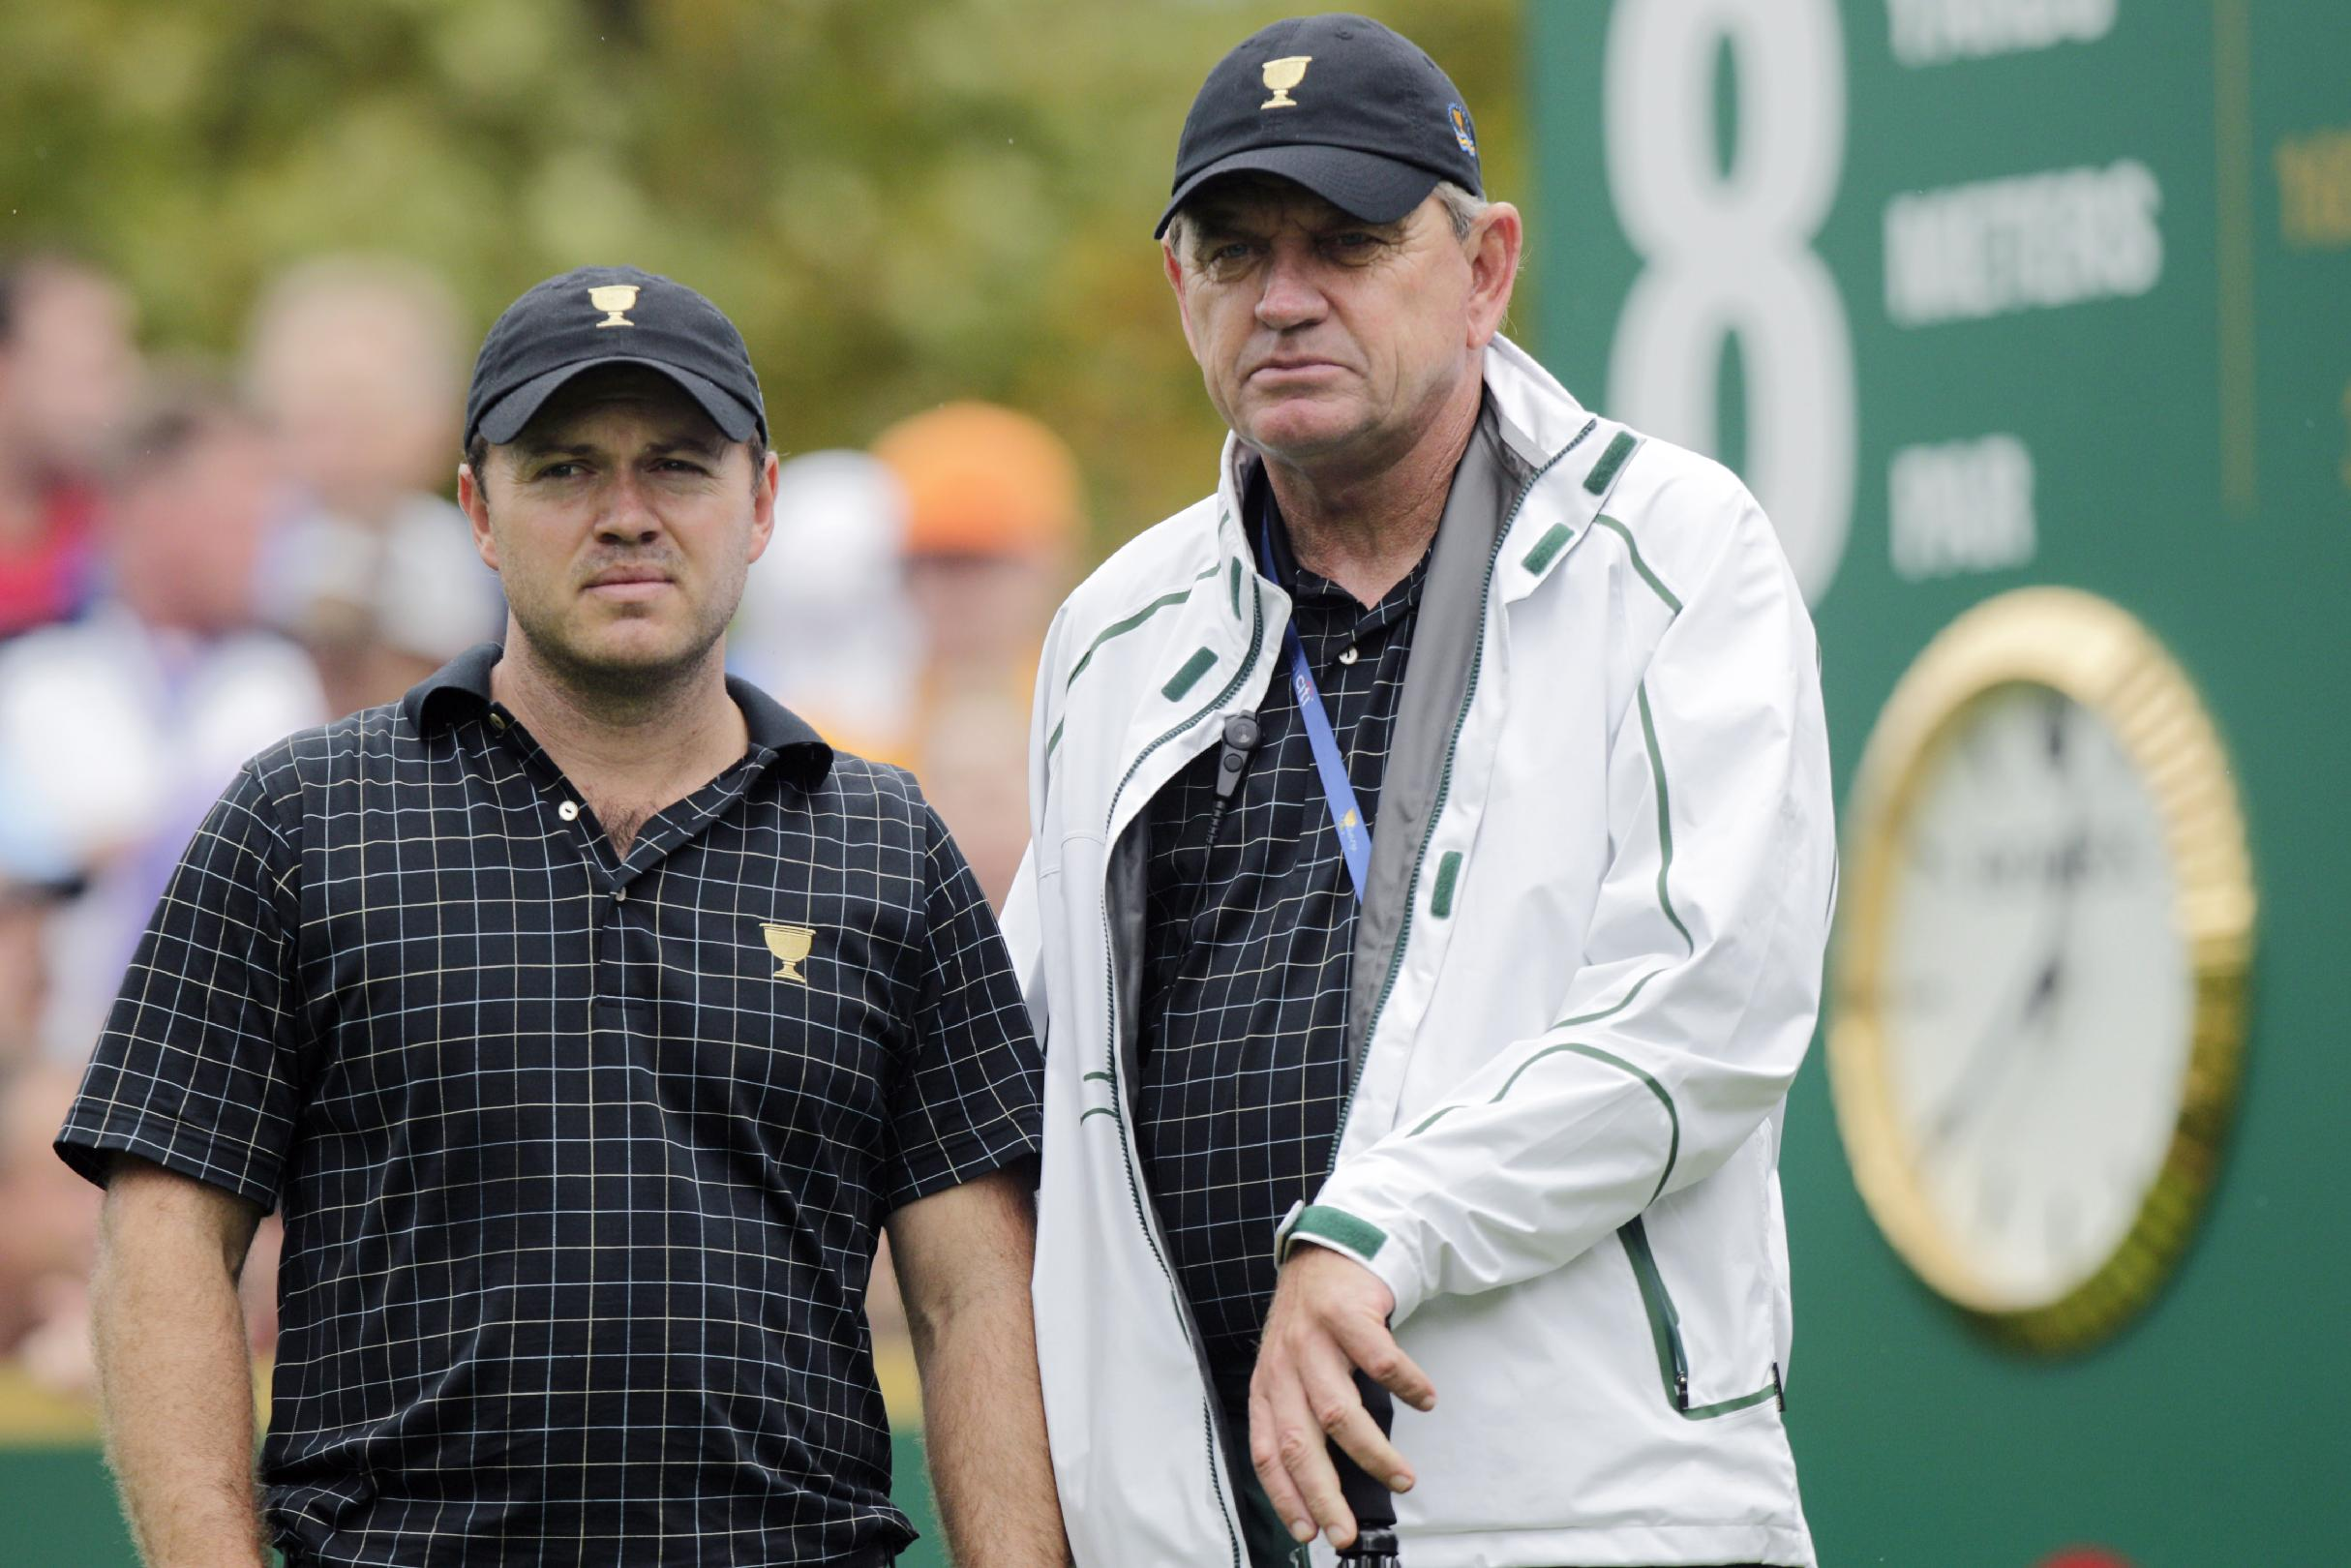 International team player Richard Sterne, left, of South Africa, and International team captain Nick Price talk on the eighth tee box during the single matches at the Presidents Cup golf tournament at Muirfield Village Golf Club Sunday, Oct. 6, 2013, in Dublin, Ohio